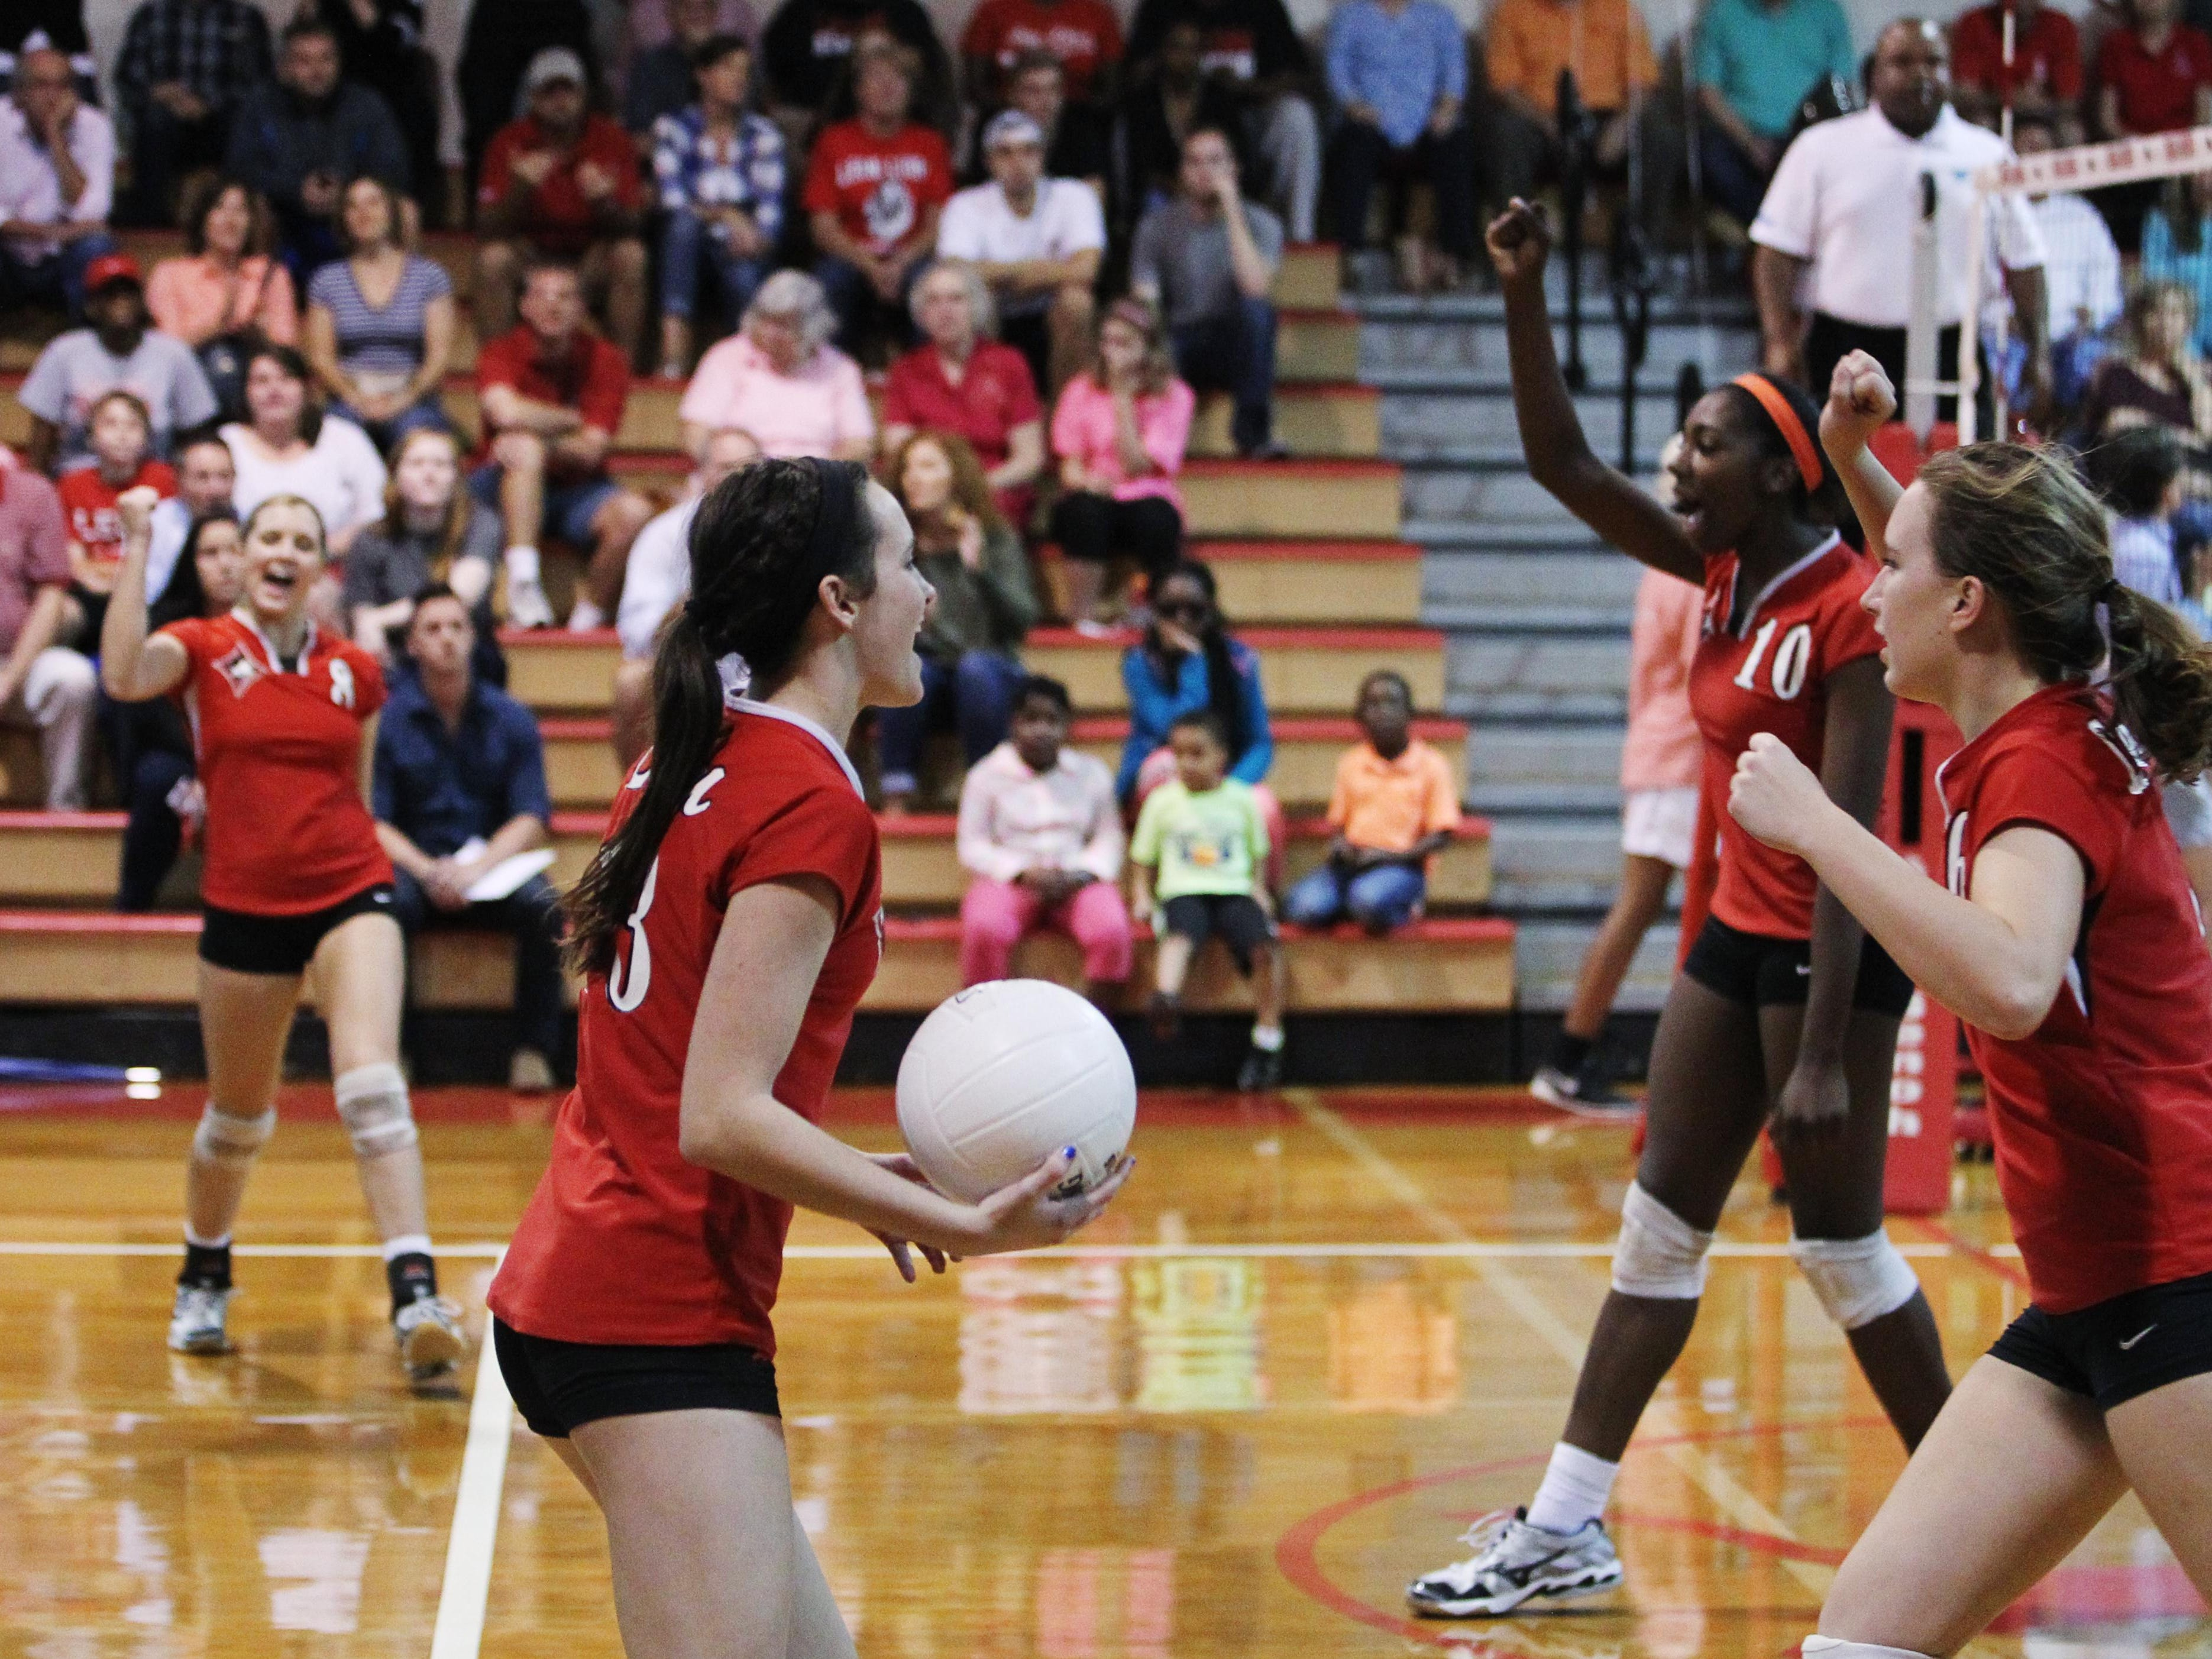 The Leon volleyball team made it as far as the Class 7A state semifinals before exiting with a 3-2 loss to Tampa Plant.